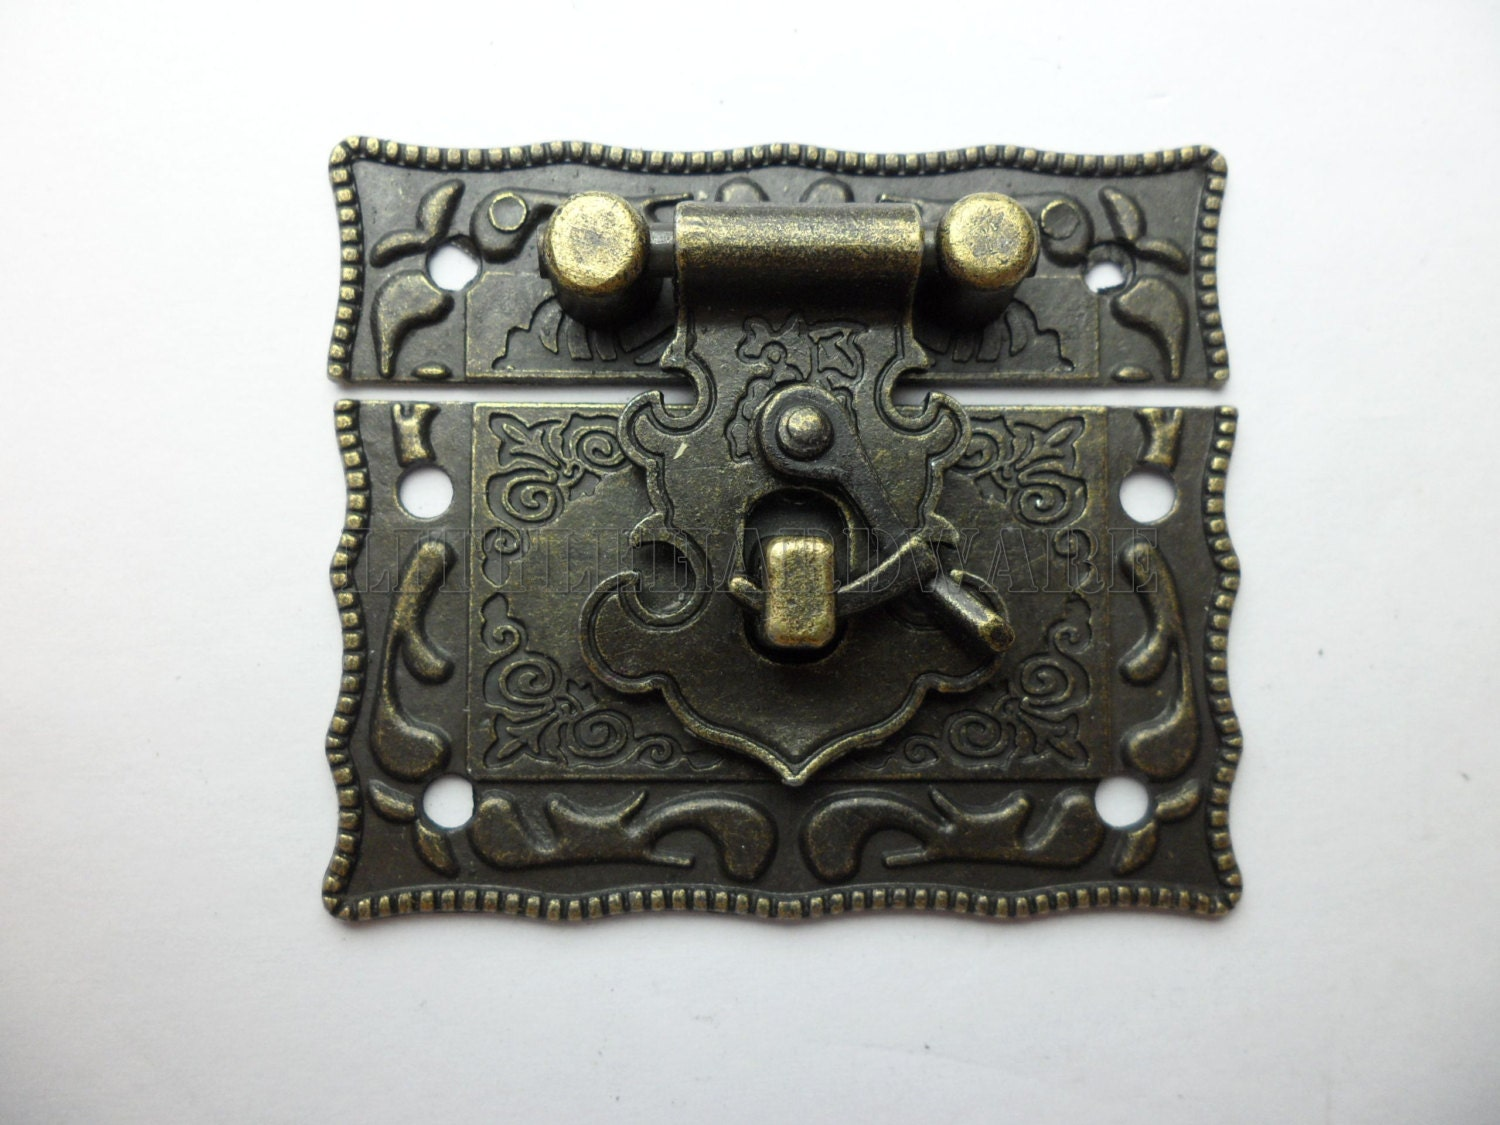 Hasp And Staple >> 51mmx43mm antique Brass Jewelry Box latch/Hasp Catch/ small